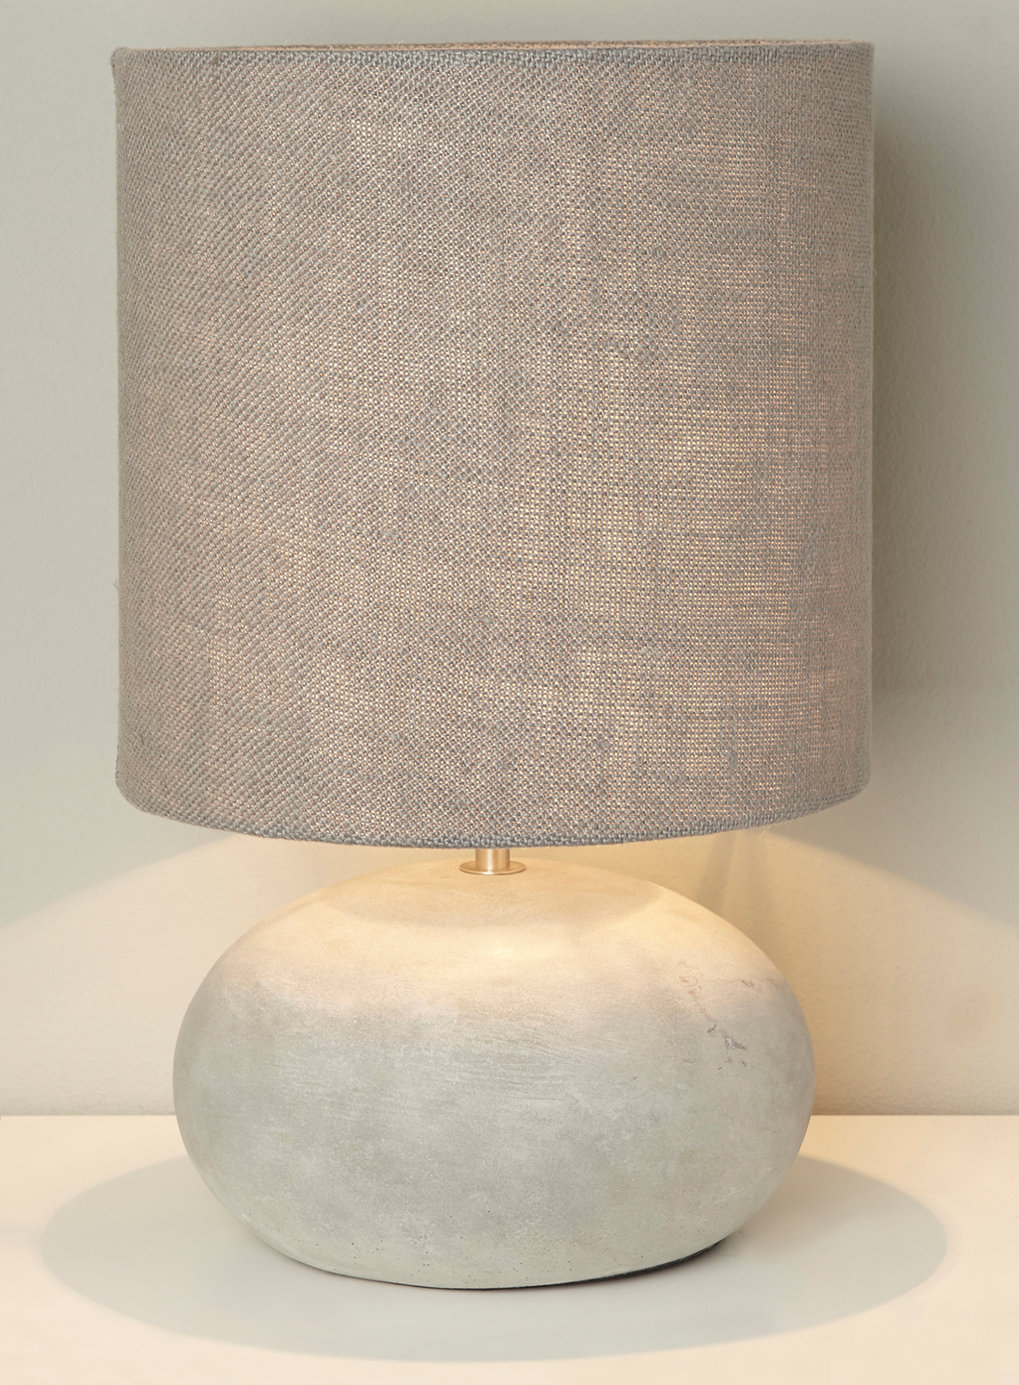 Concrete Interior Accessories Table Lamp